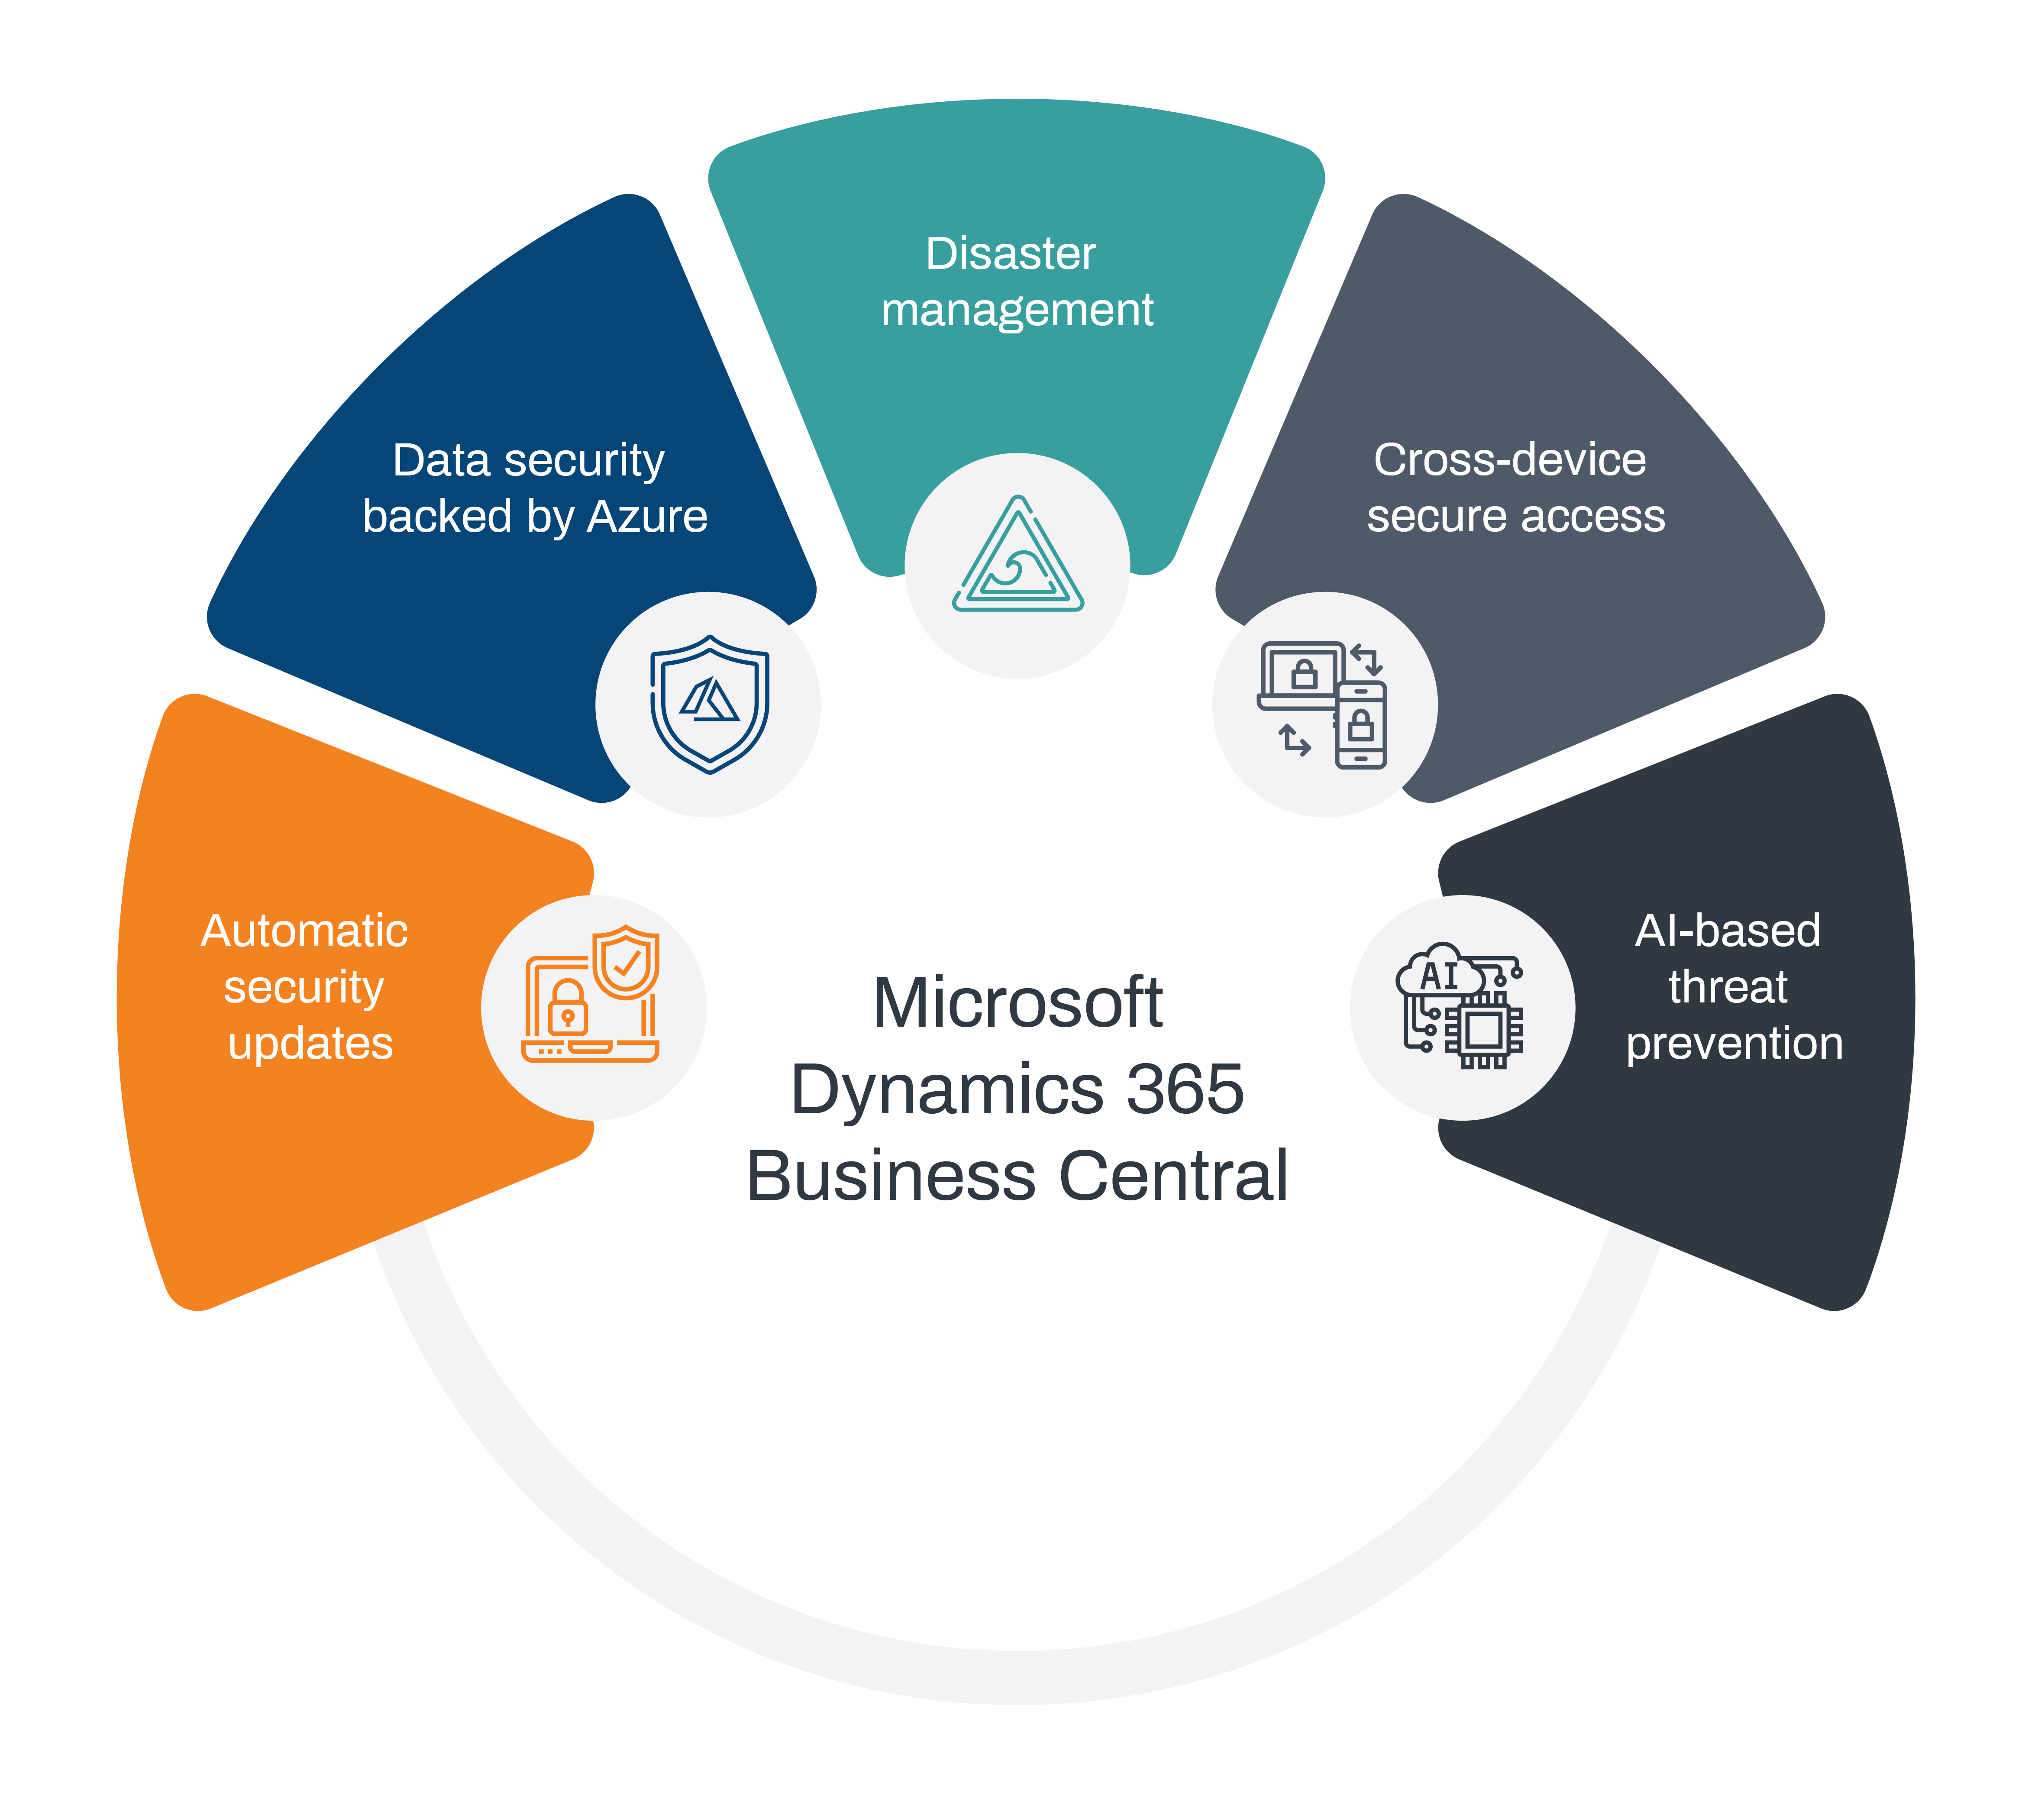 Security and Protection - Microsoft Dynamics Business Central